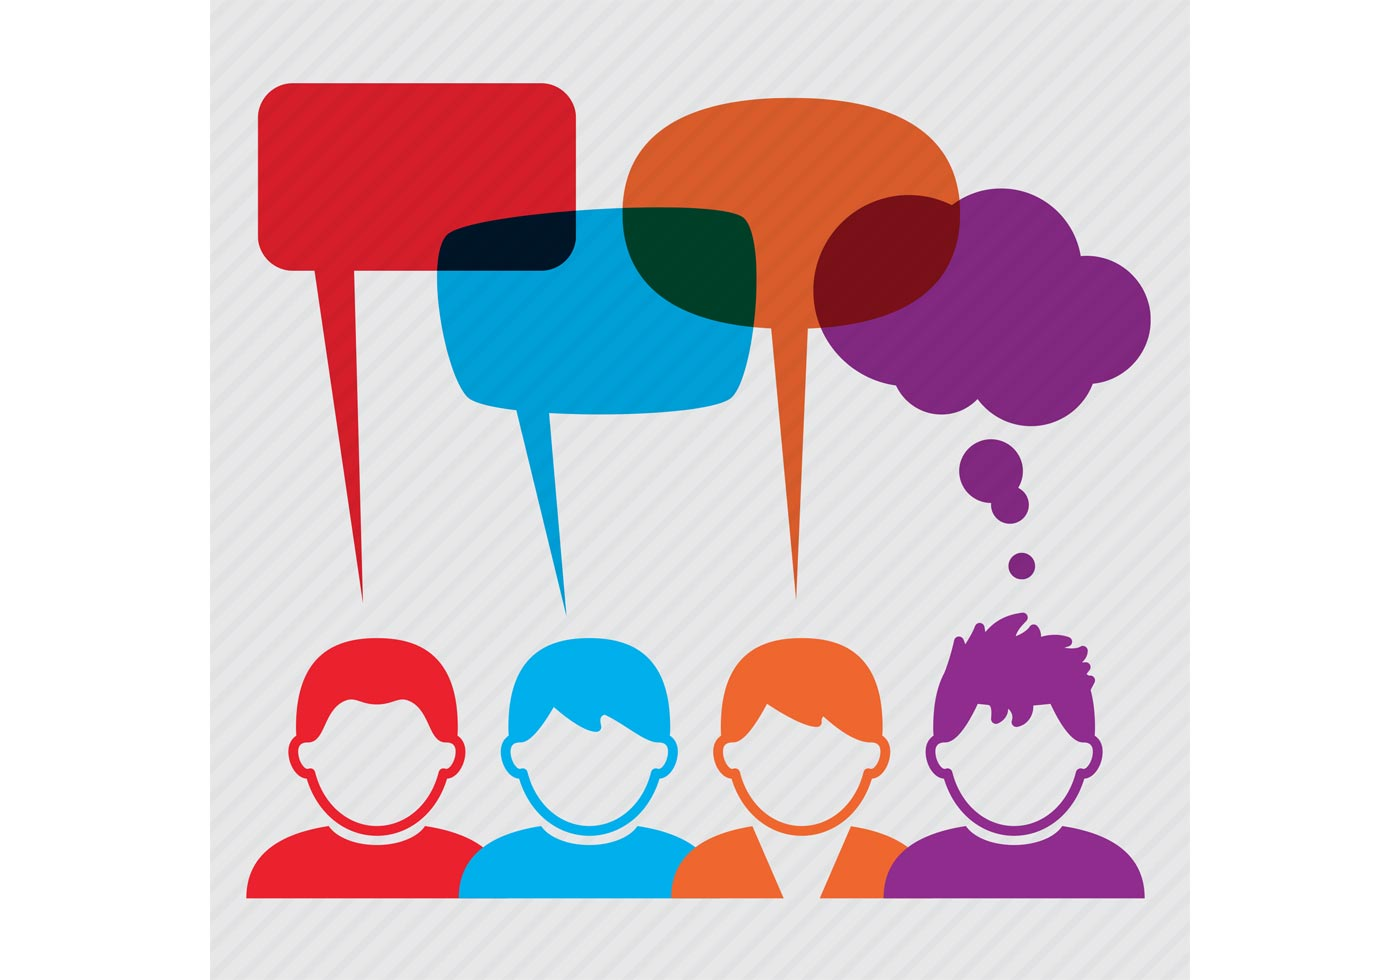 People Vectors with Speech Bubbles  Download Free Vector